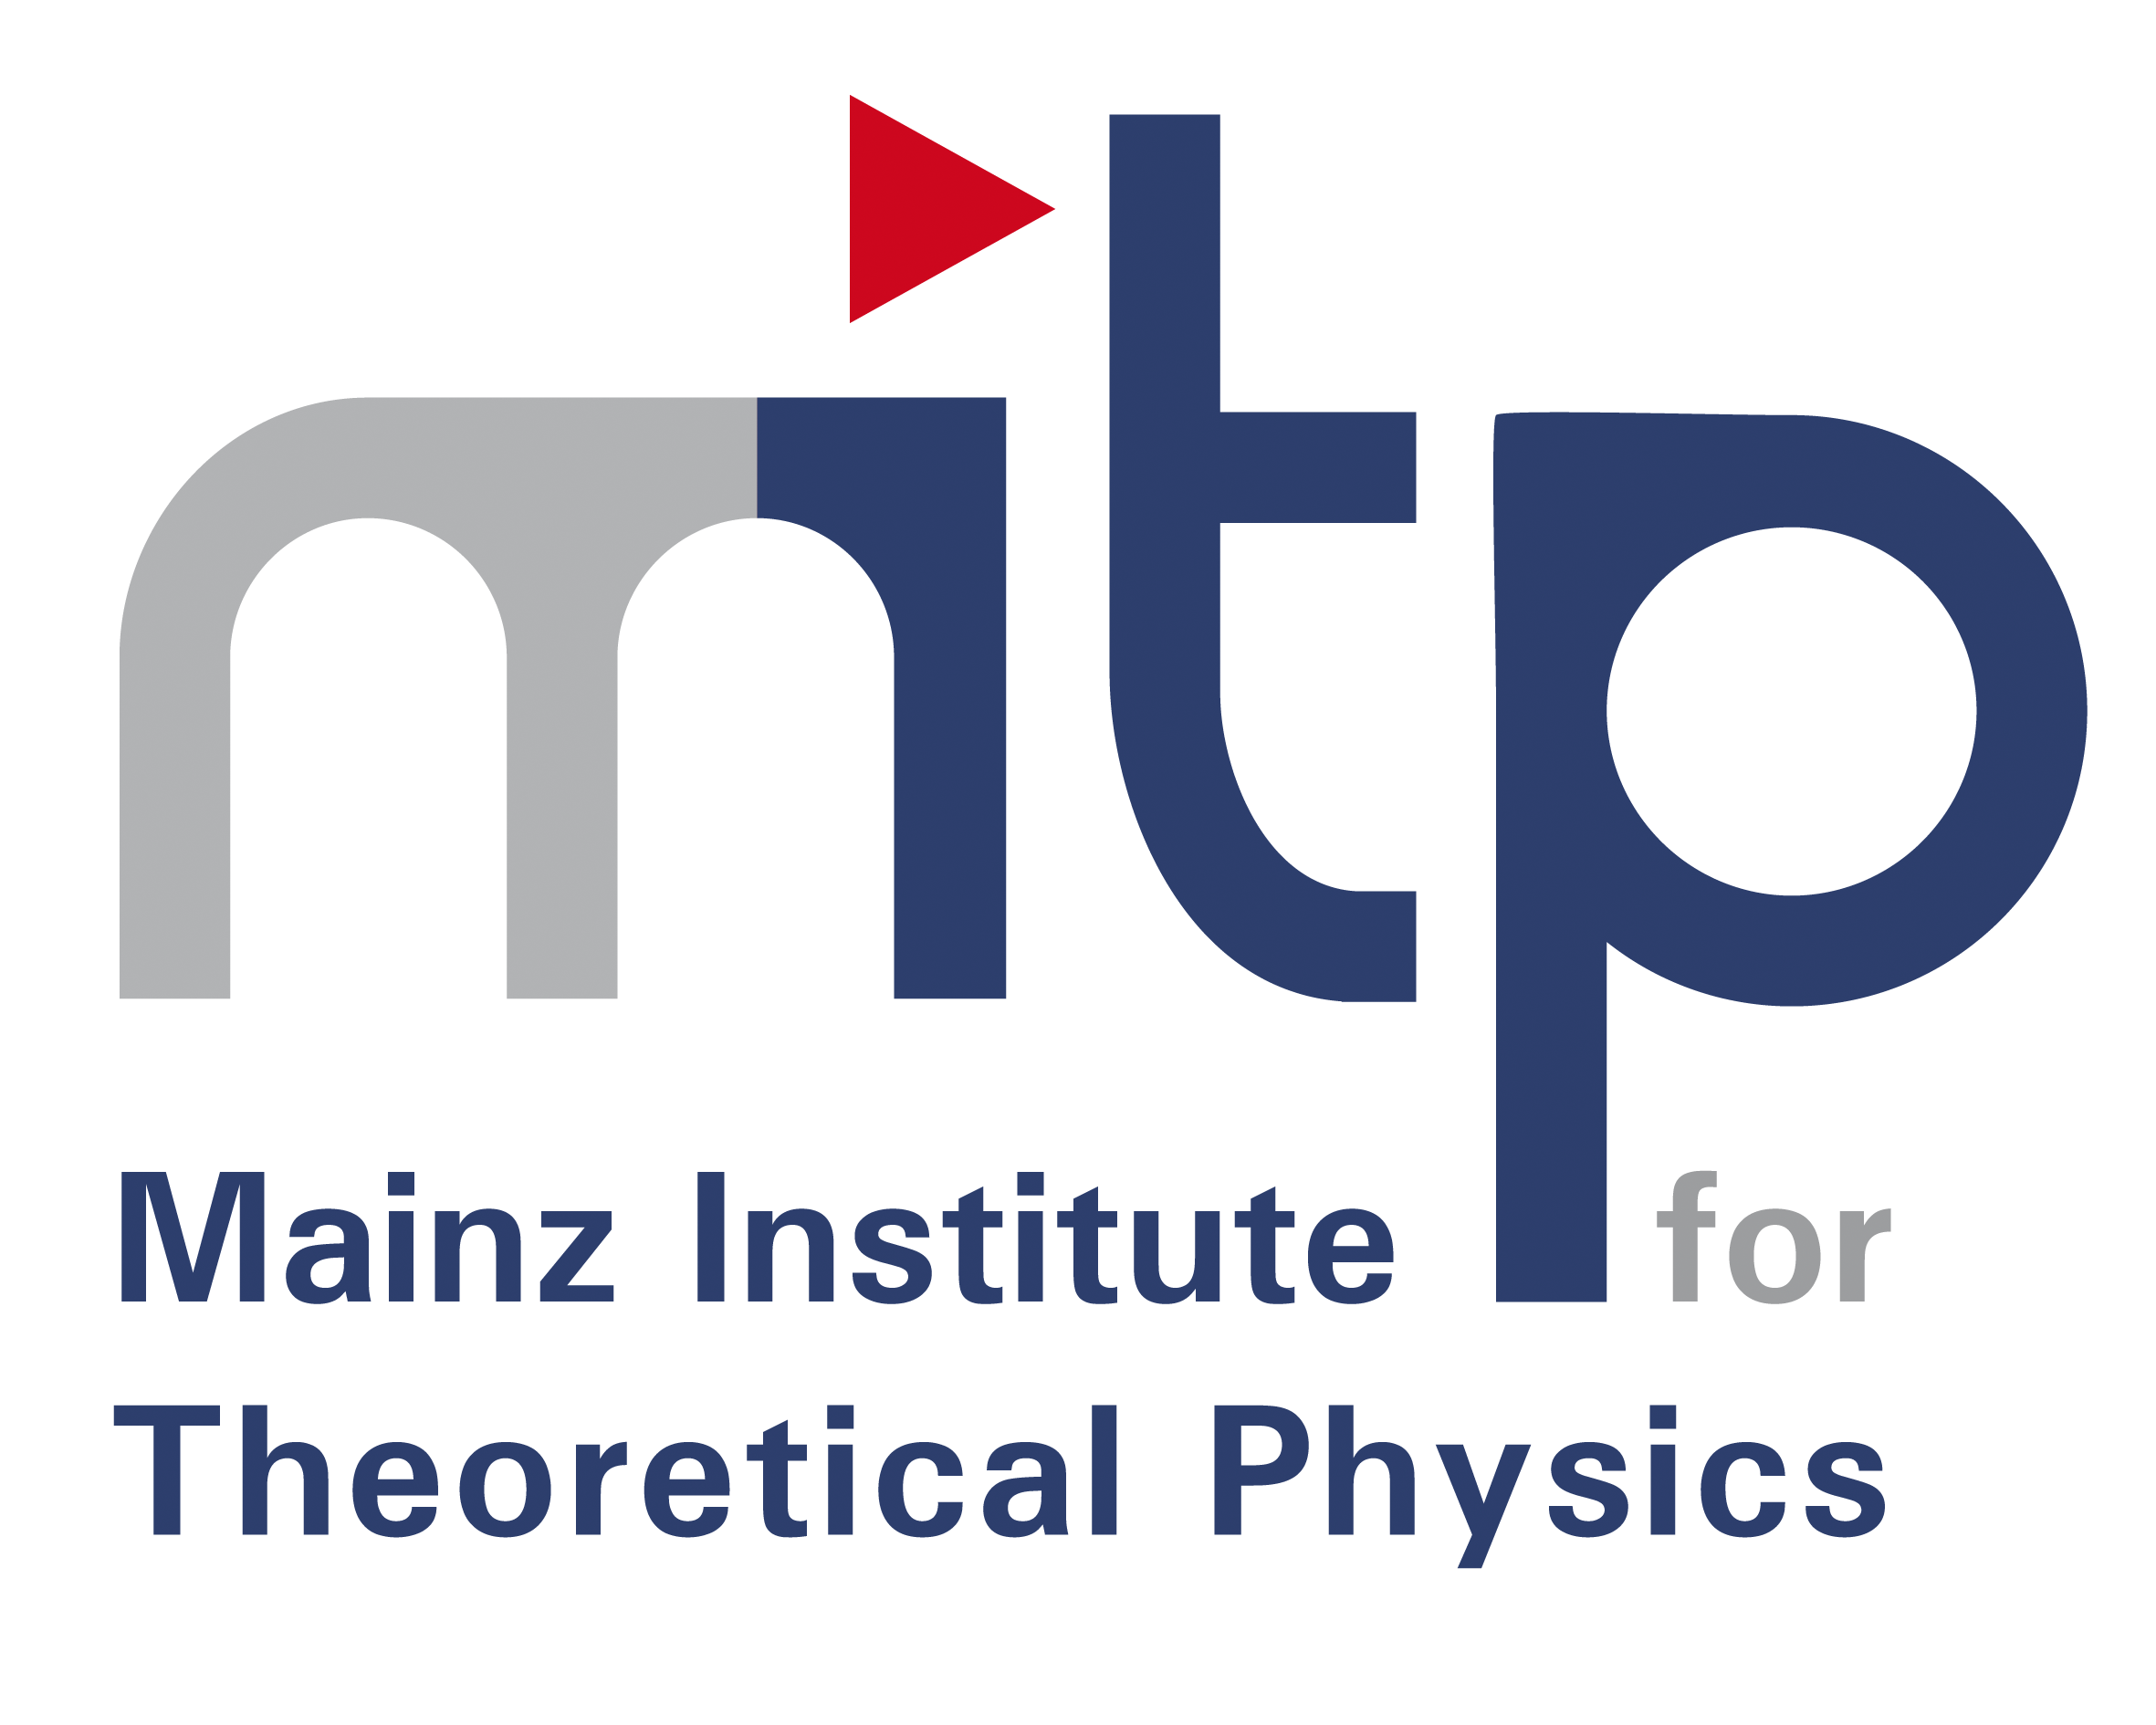 MITP - Mainz Institute for Theoretical Physics